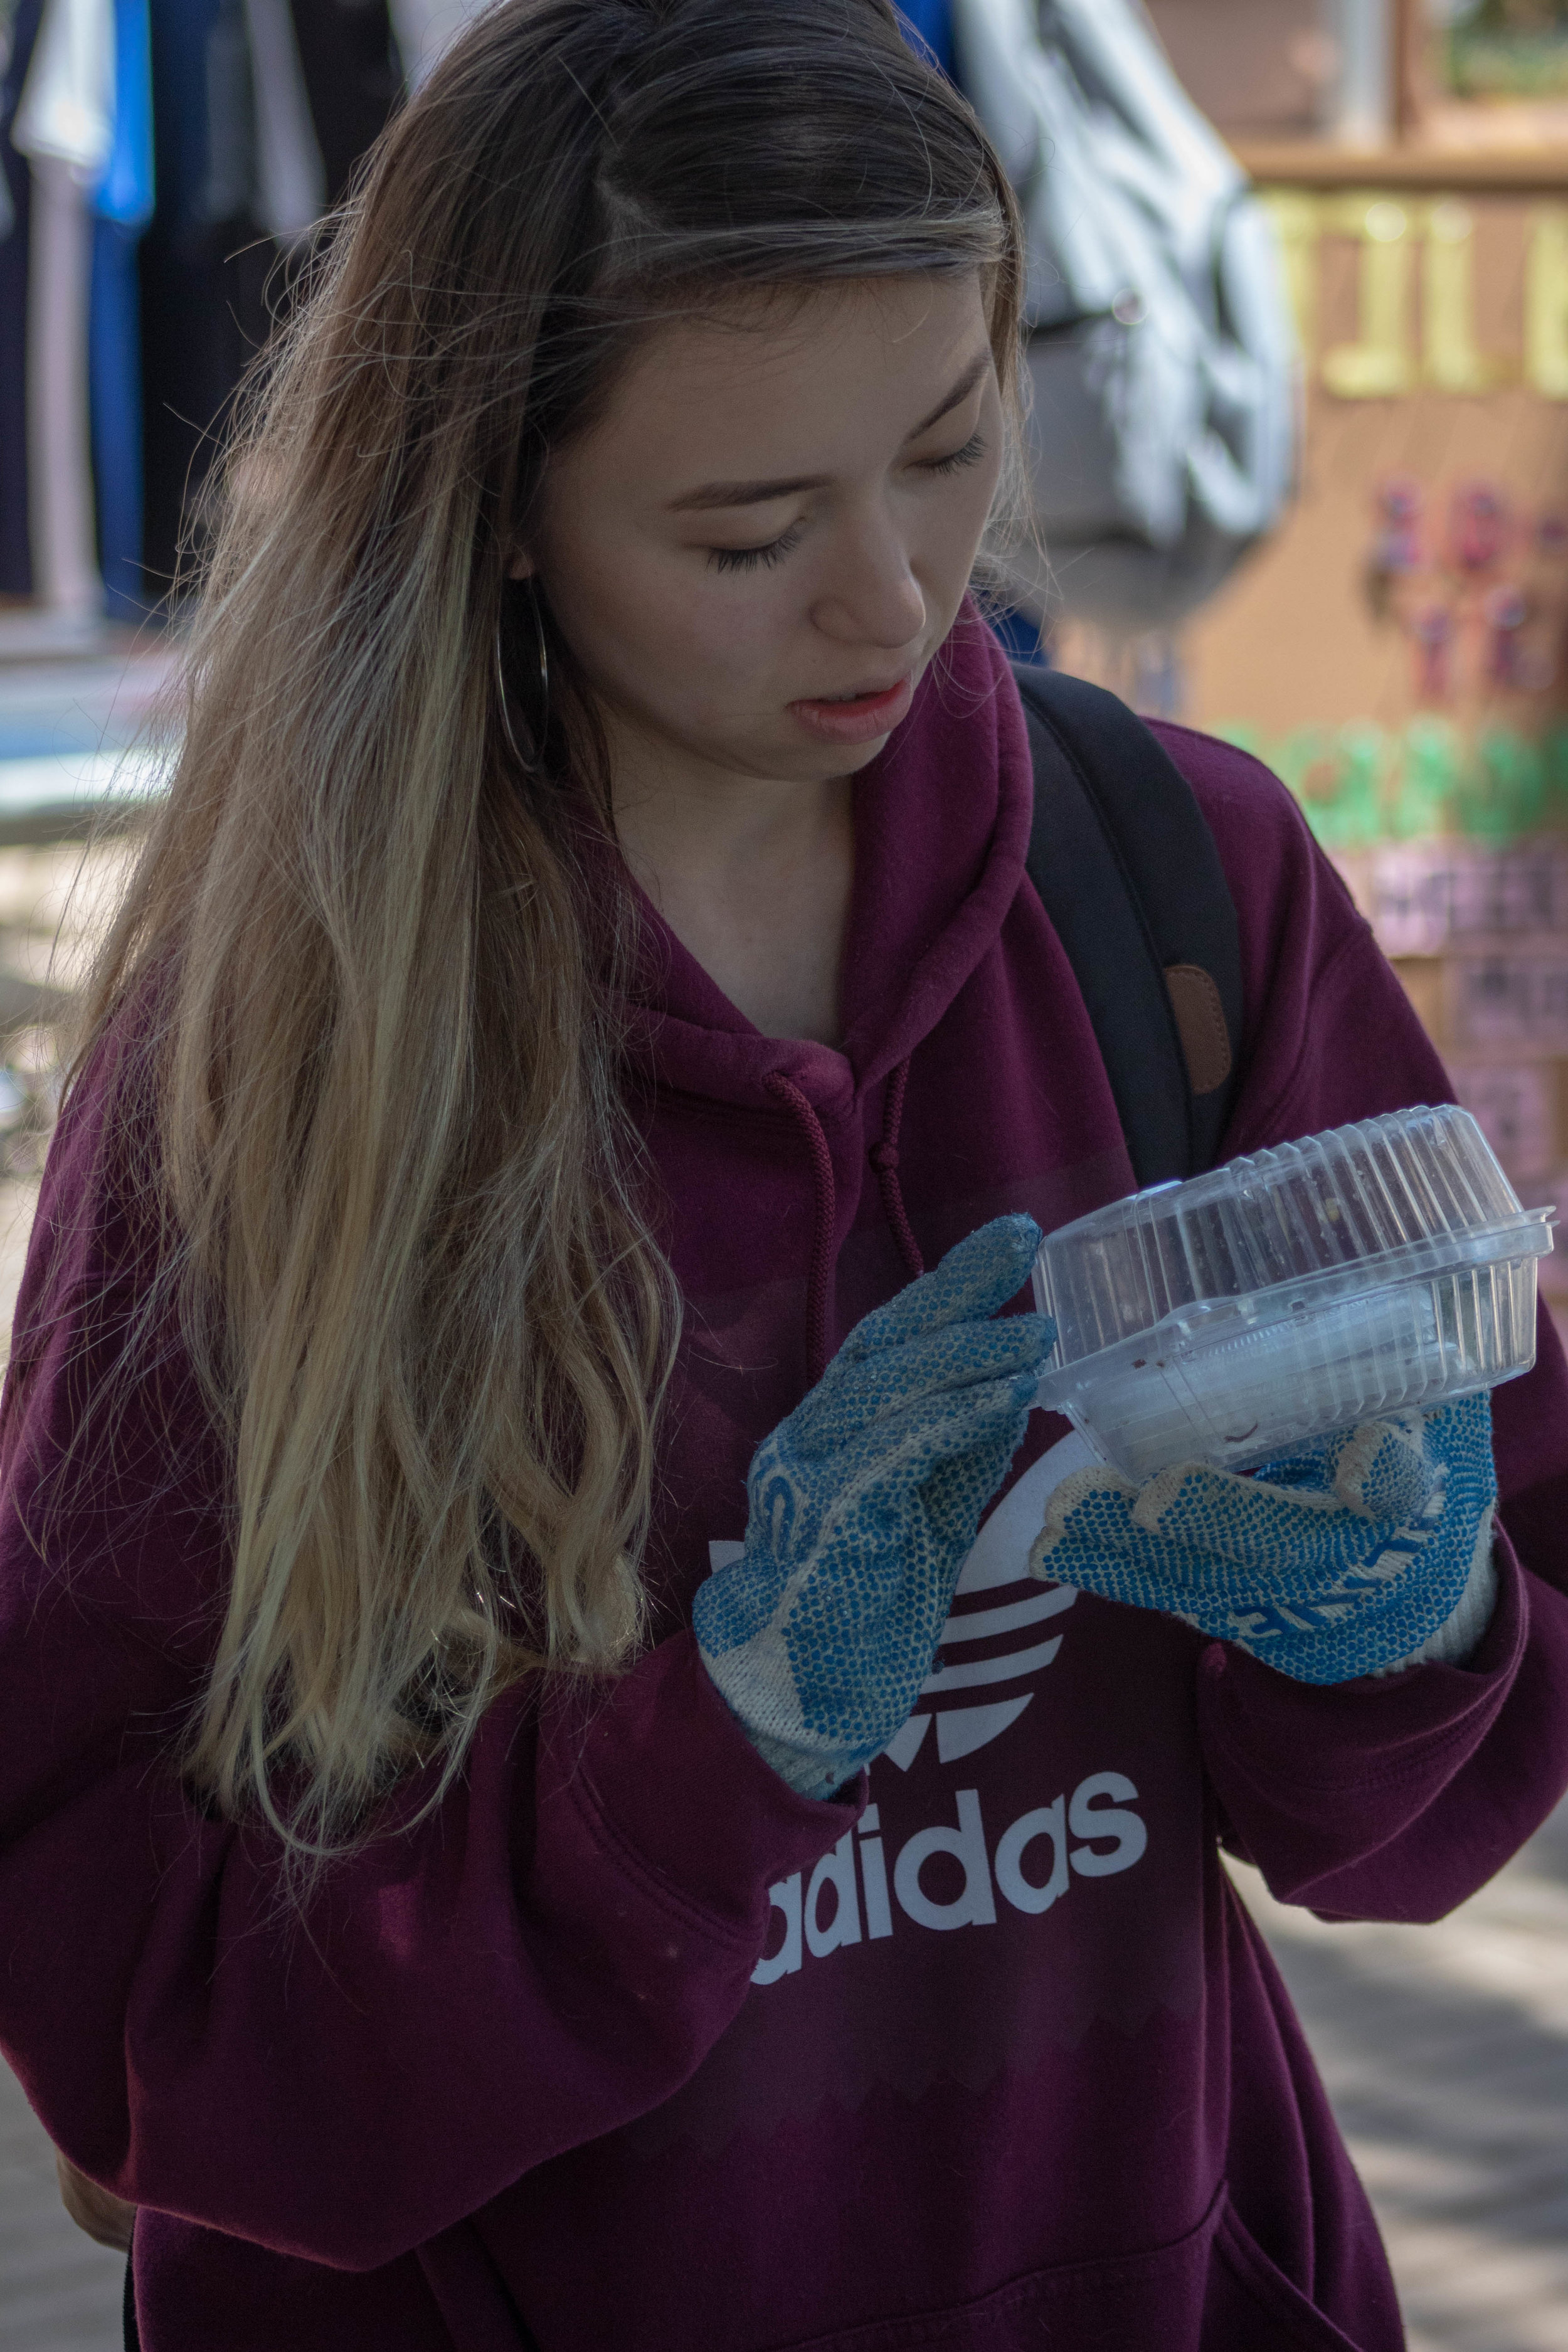 Zulfinarr Kunanba, a Business student at Santa Monica College, participates in the Trash Sorting Game during the Earth Week Interactive Learning Day at the SMC main campus quad on Wednesday, April 24, 2019 in Santa Monica, California. (Catherine Lima/Corsair Staff)